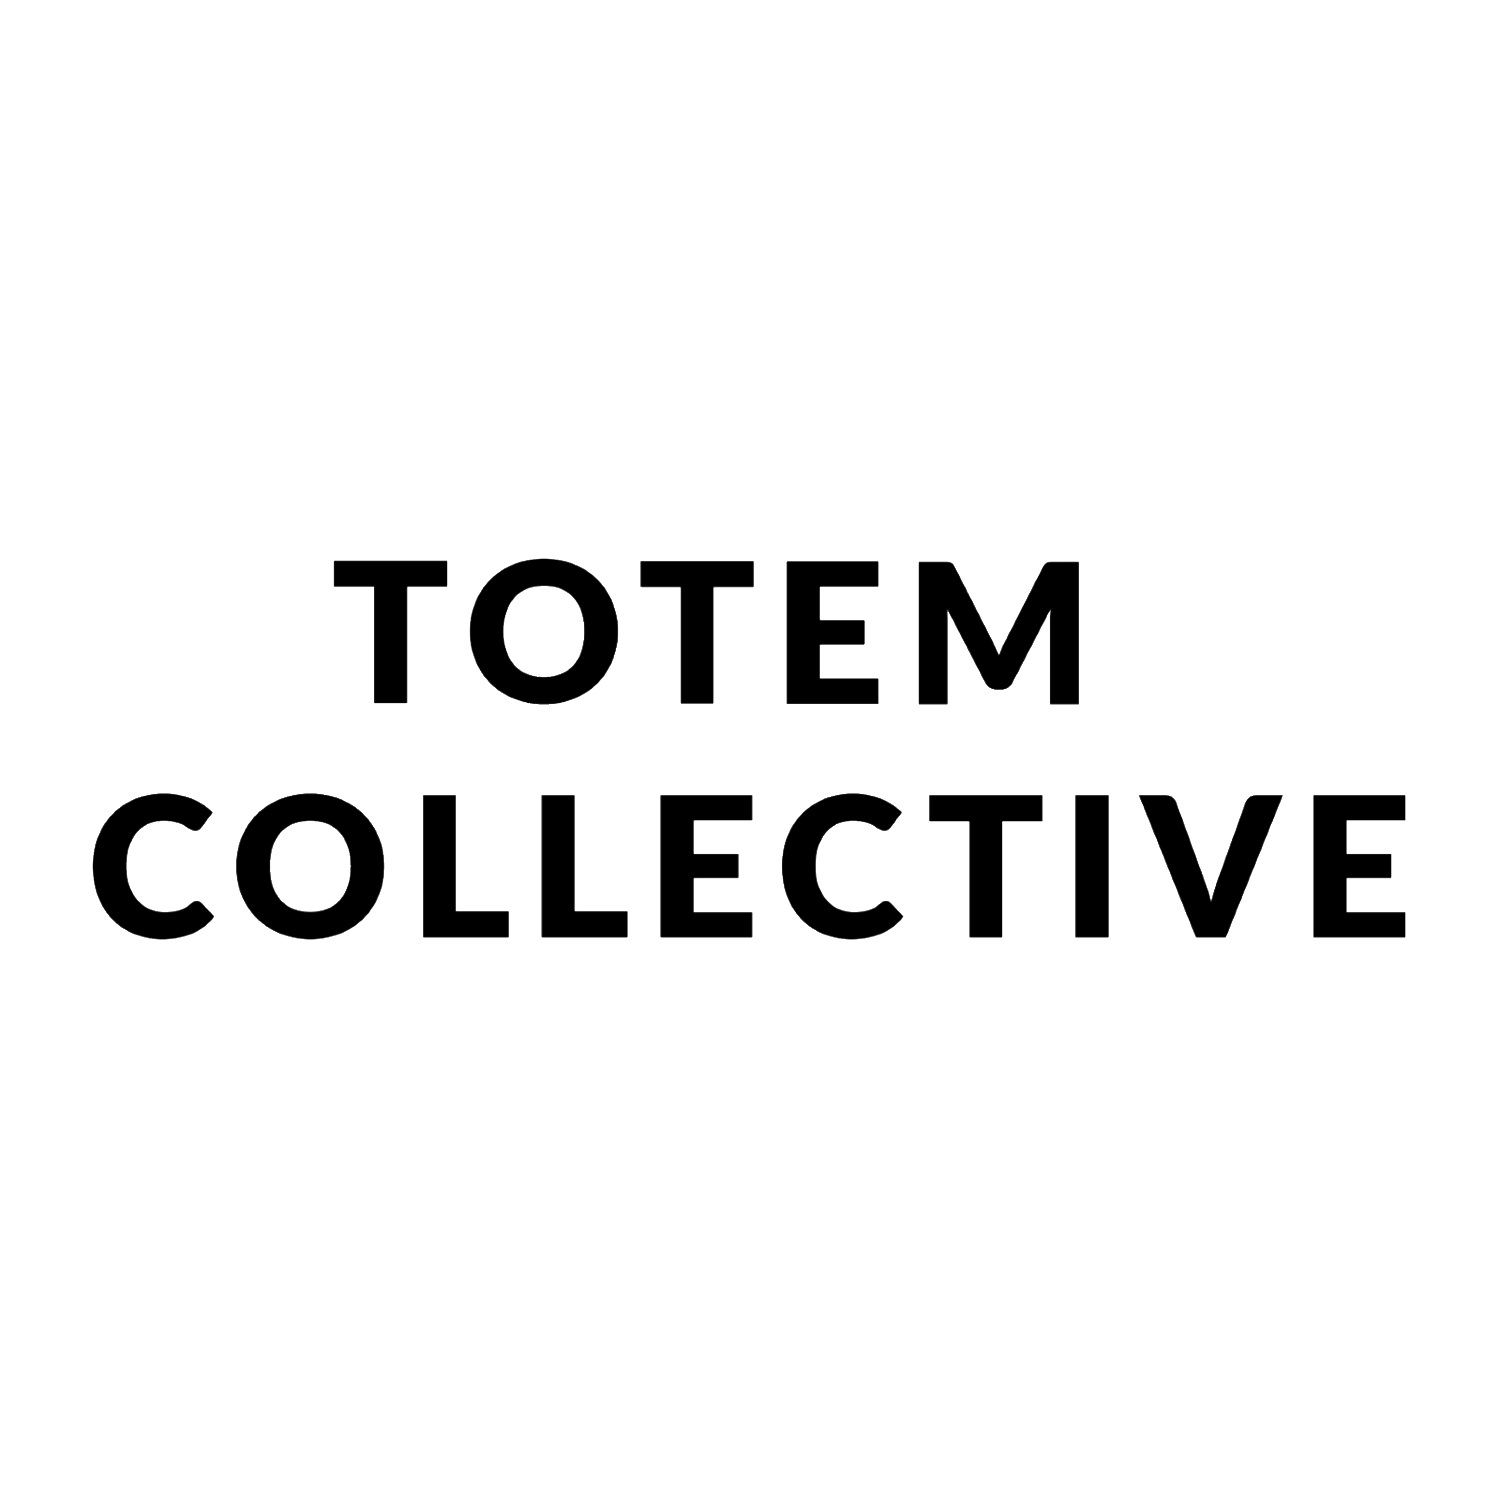 TOTEM COLLECTIVE